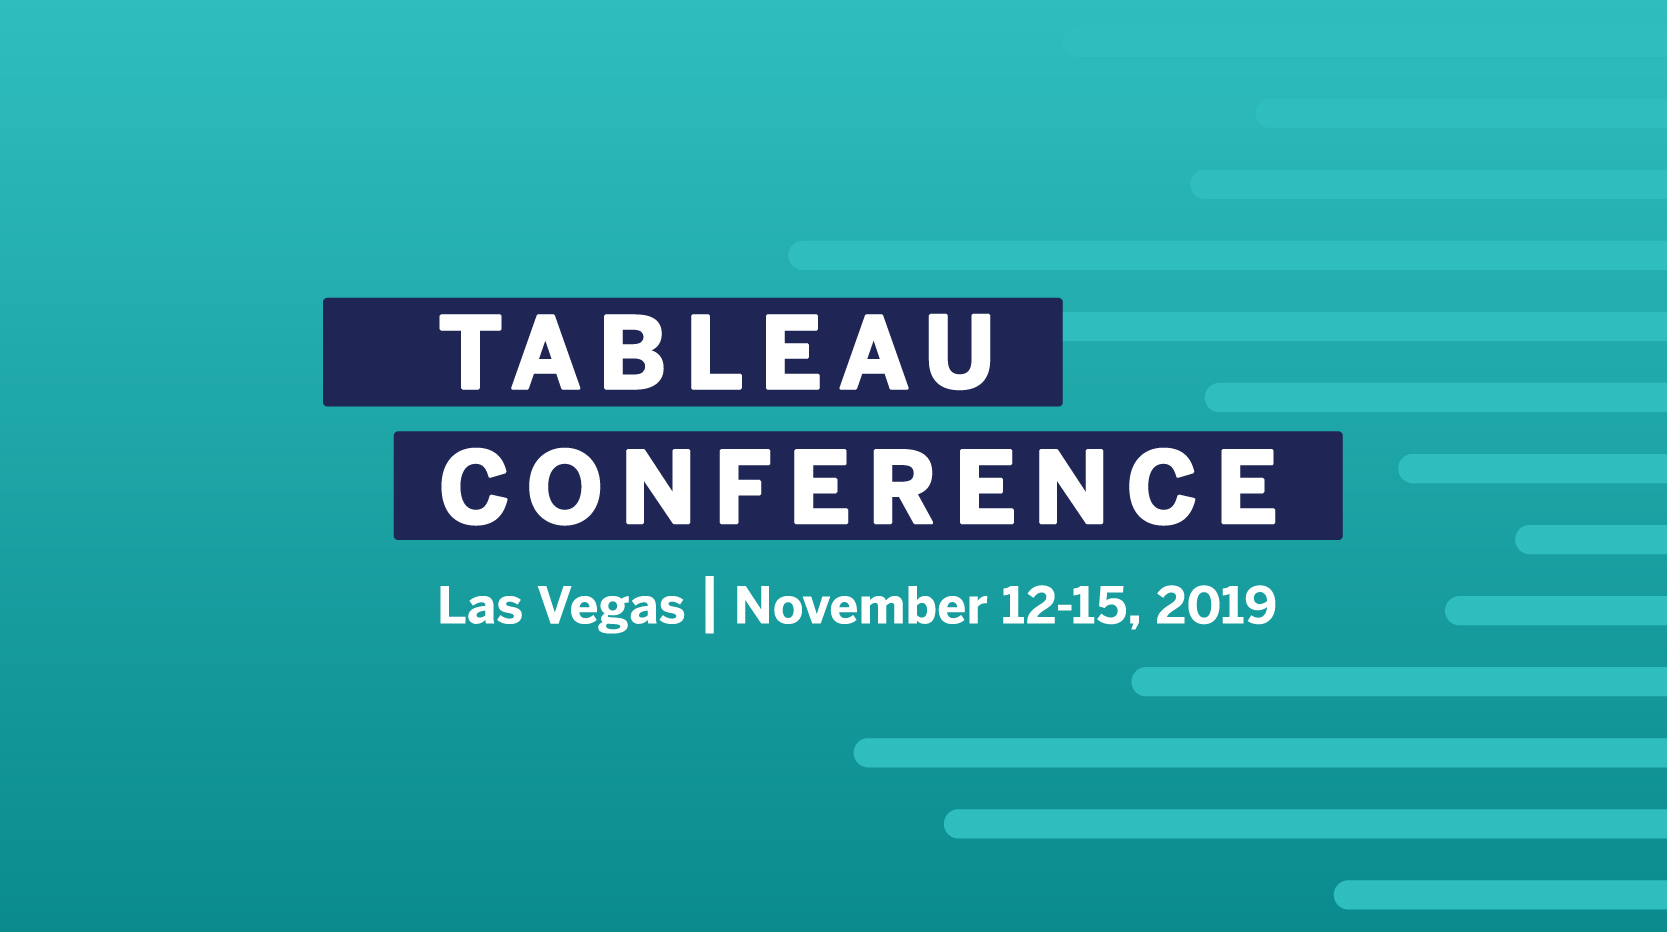 image of Tableau Conference 2019